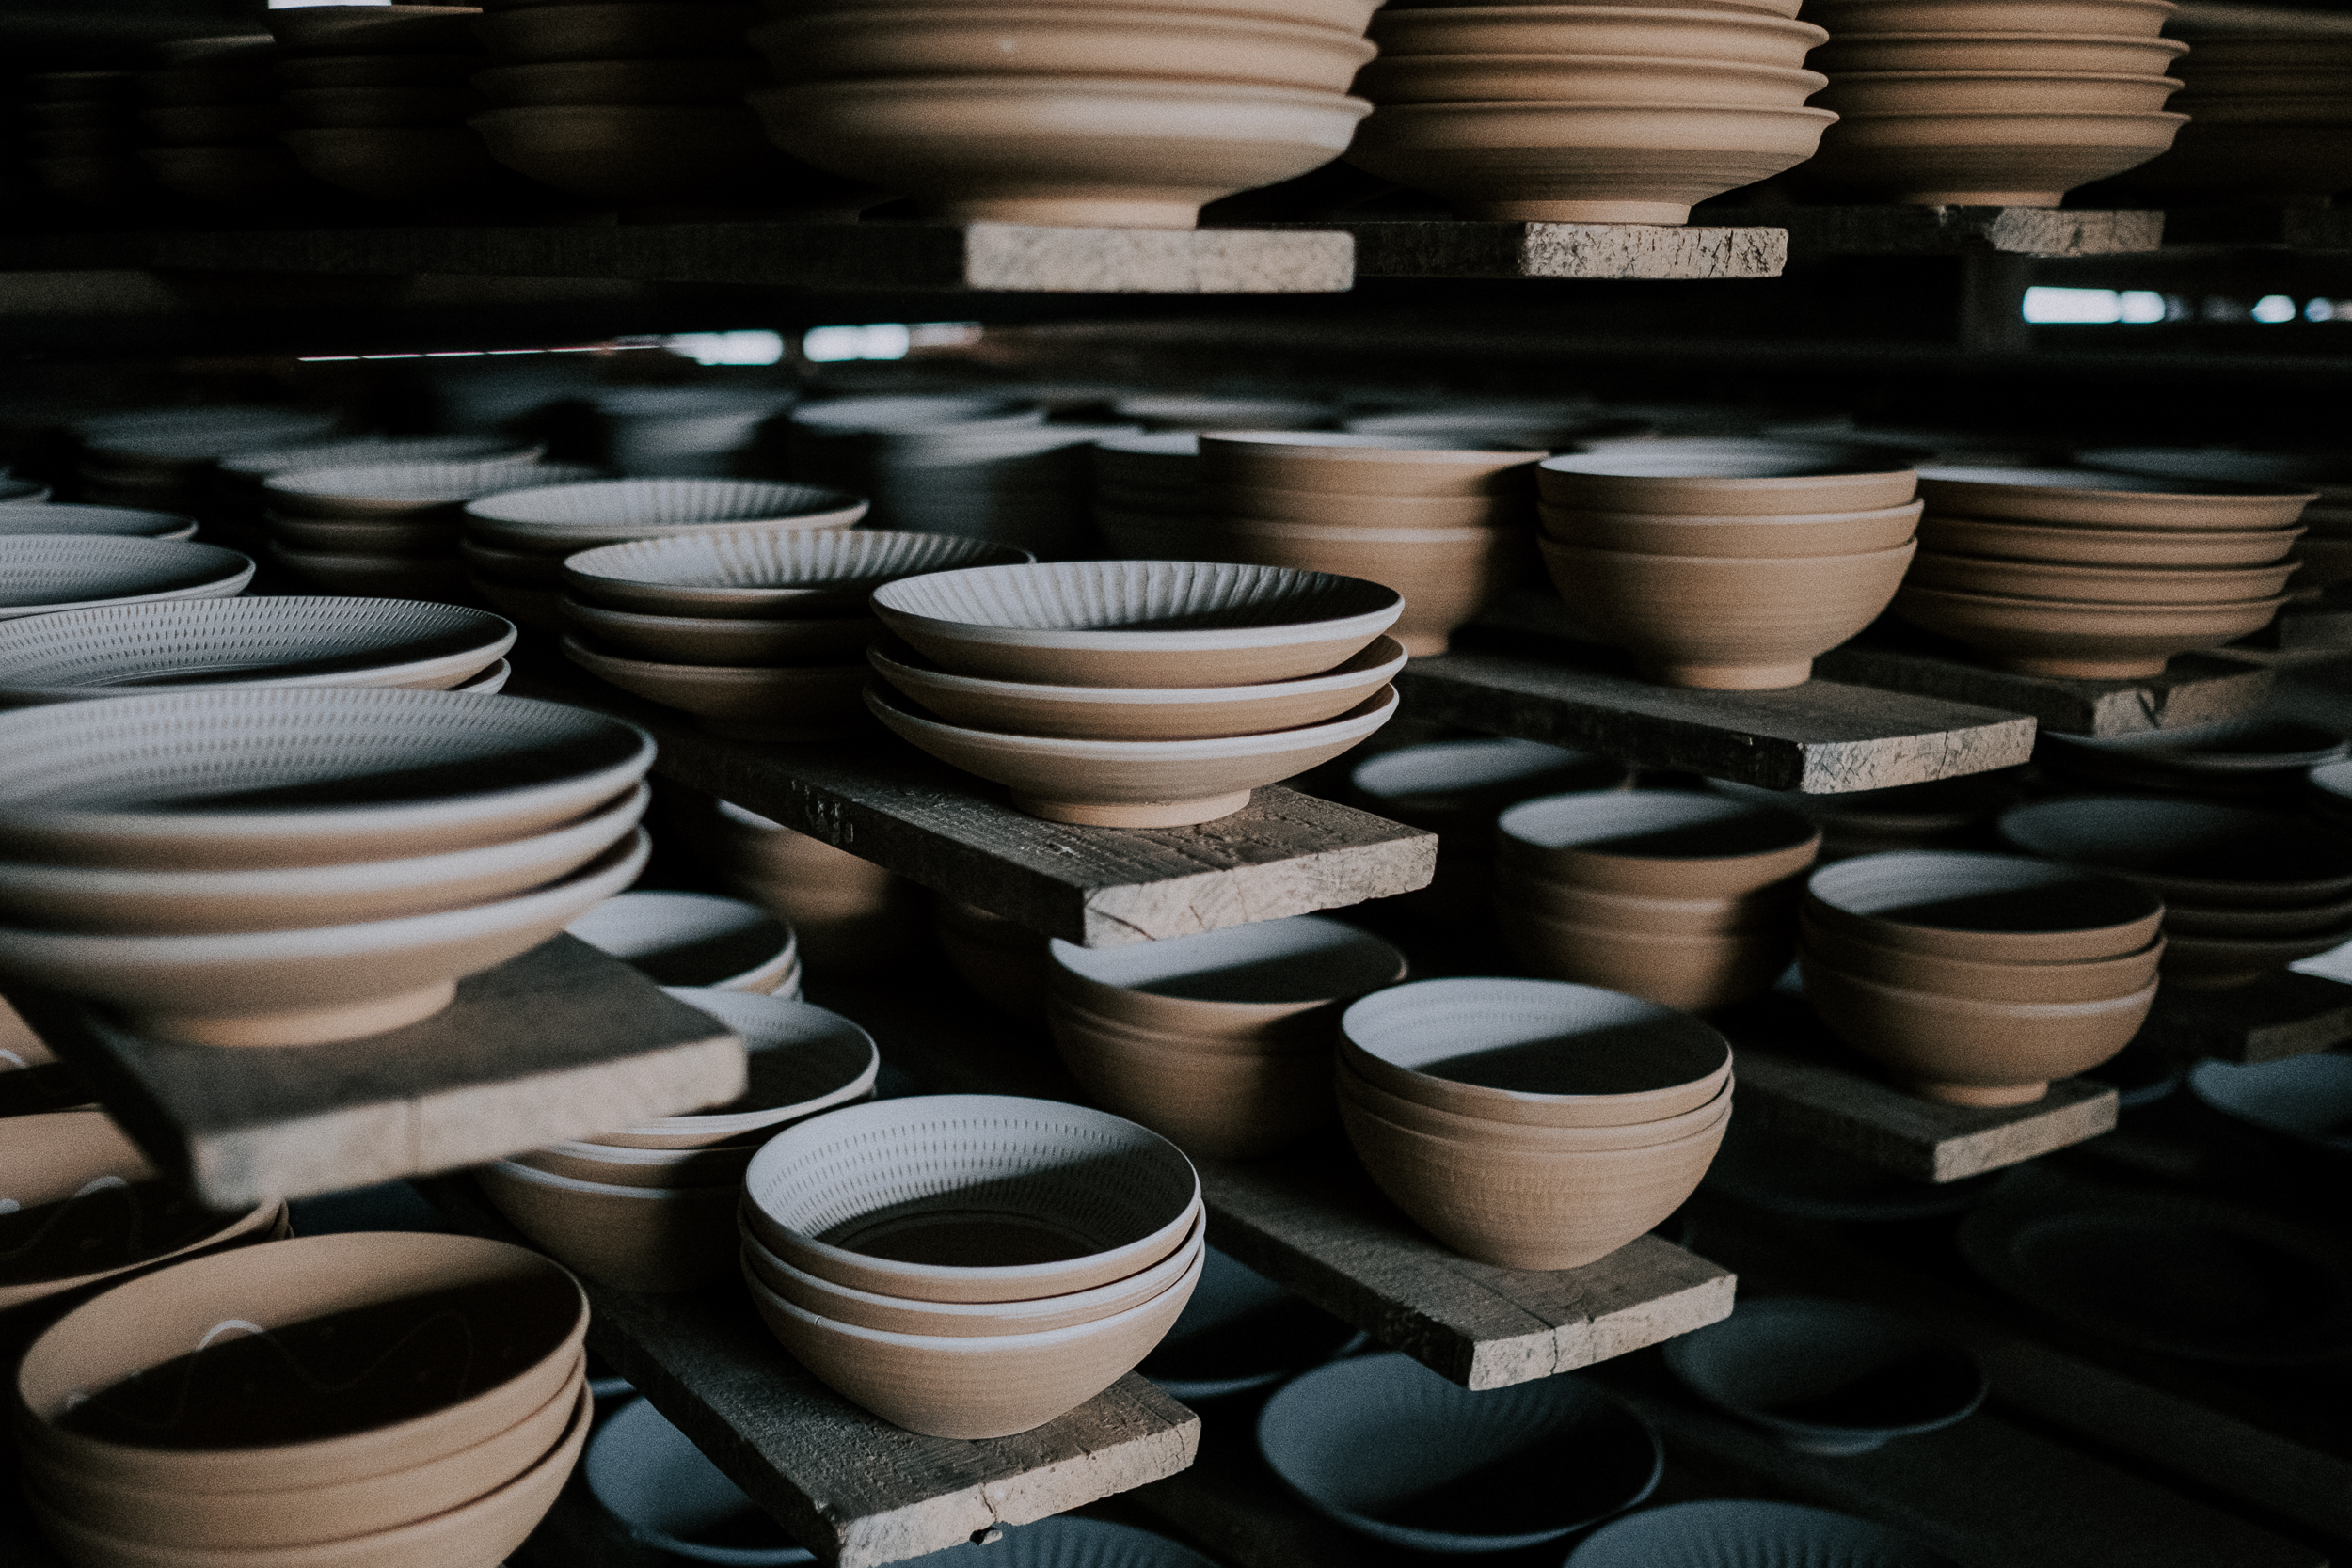 Bowls decorated with the tobi-kanna technique.